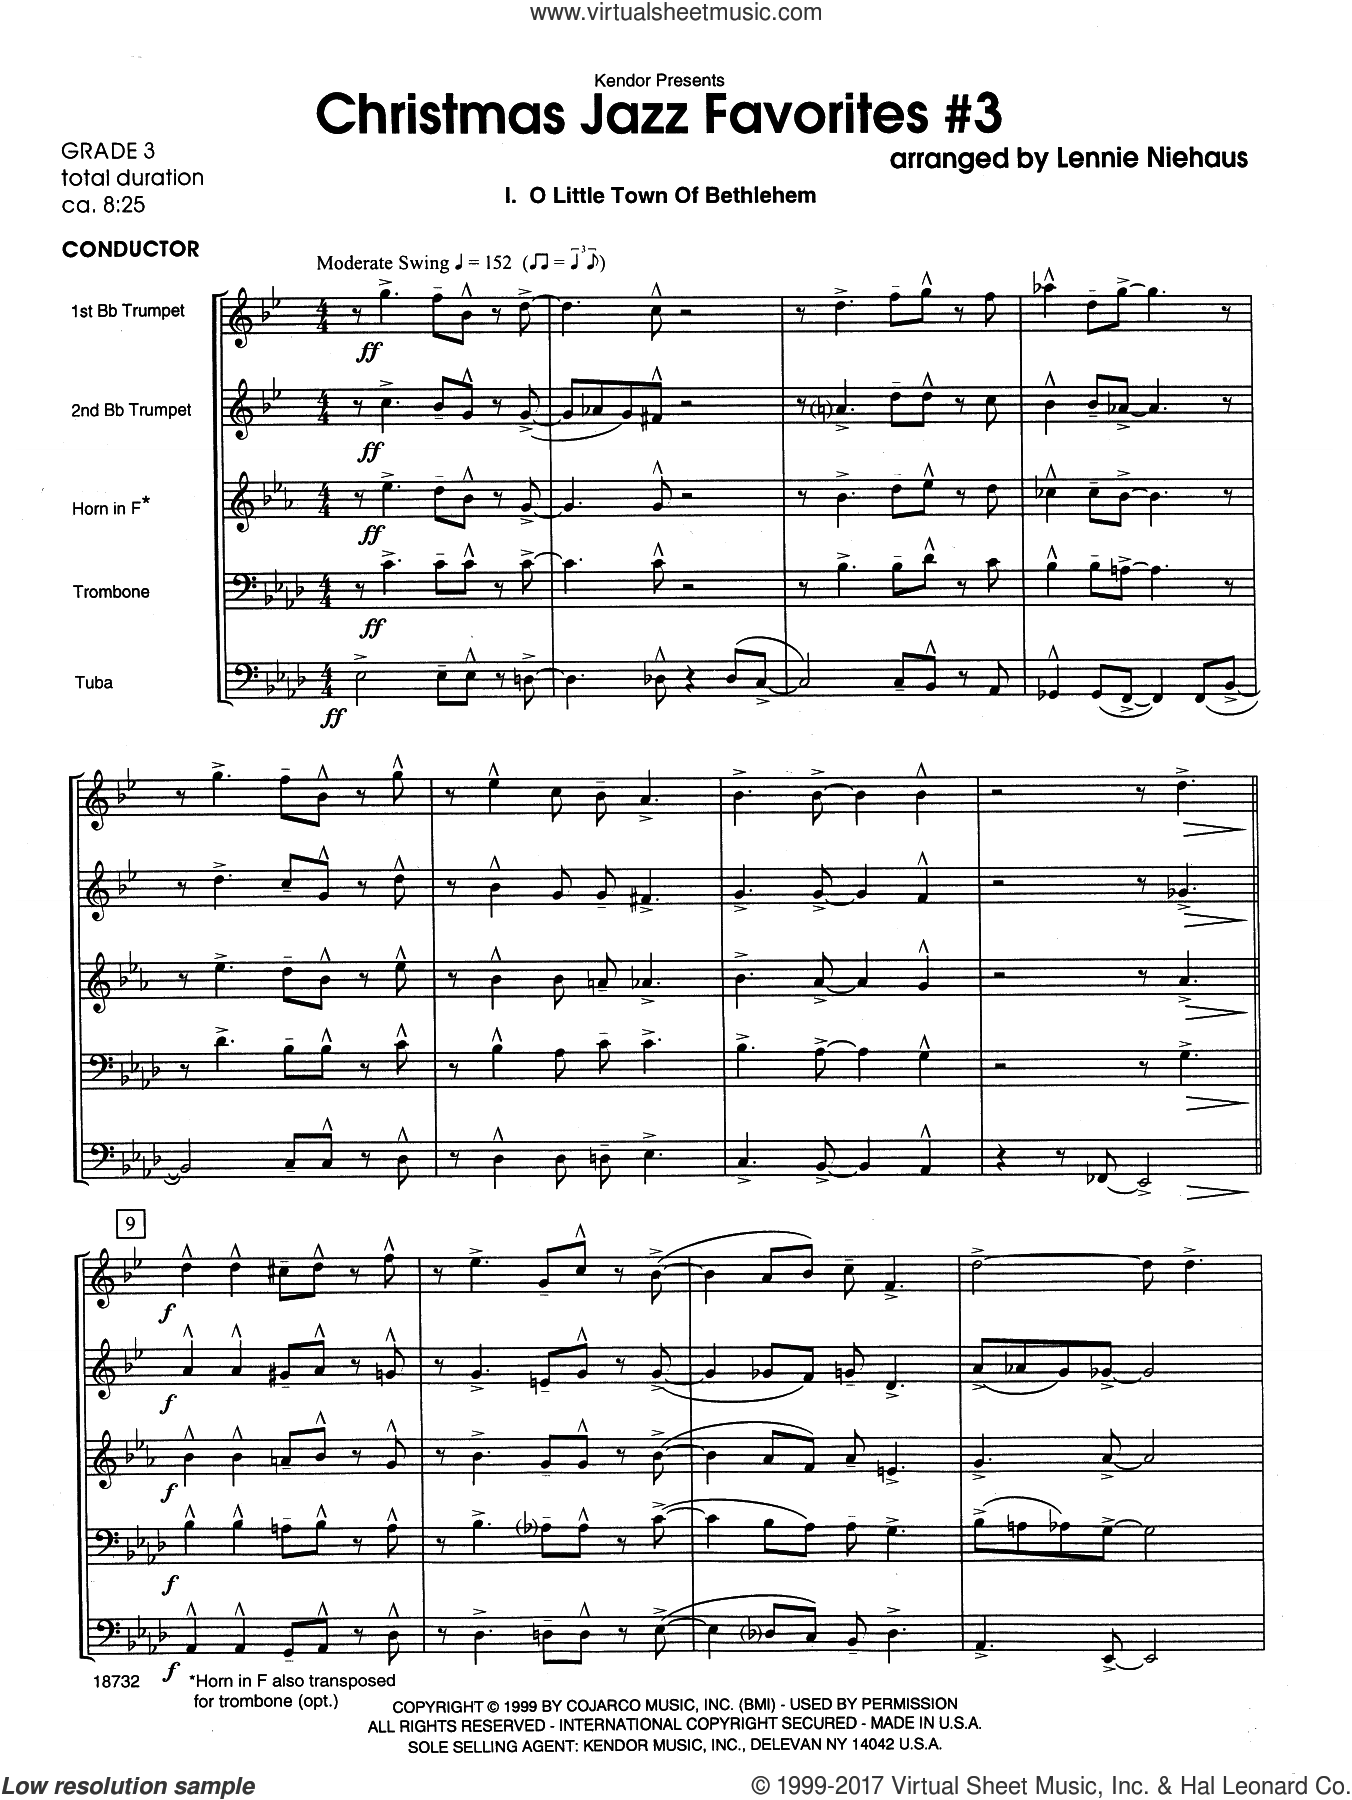 Christmas Jazz Favorites #3 (COMPLETE) sheet music for brass quintet by Lennie Niehaus, intermediate. Score Image Preview.